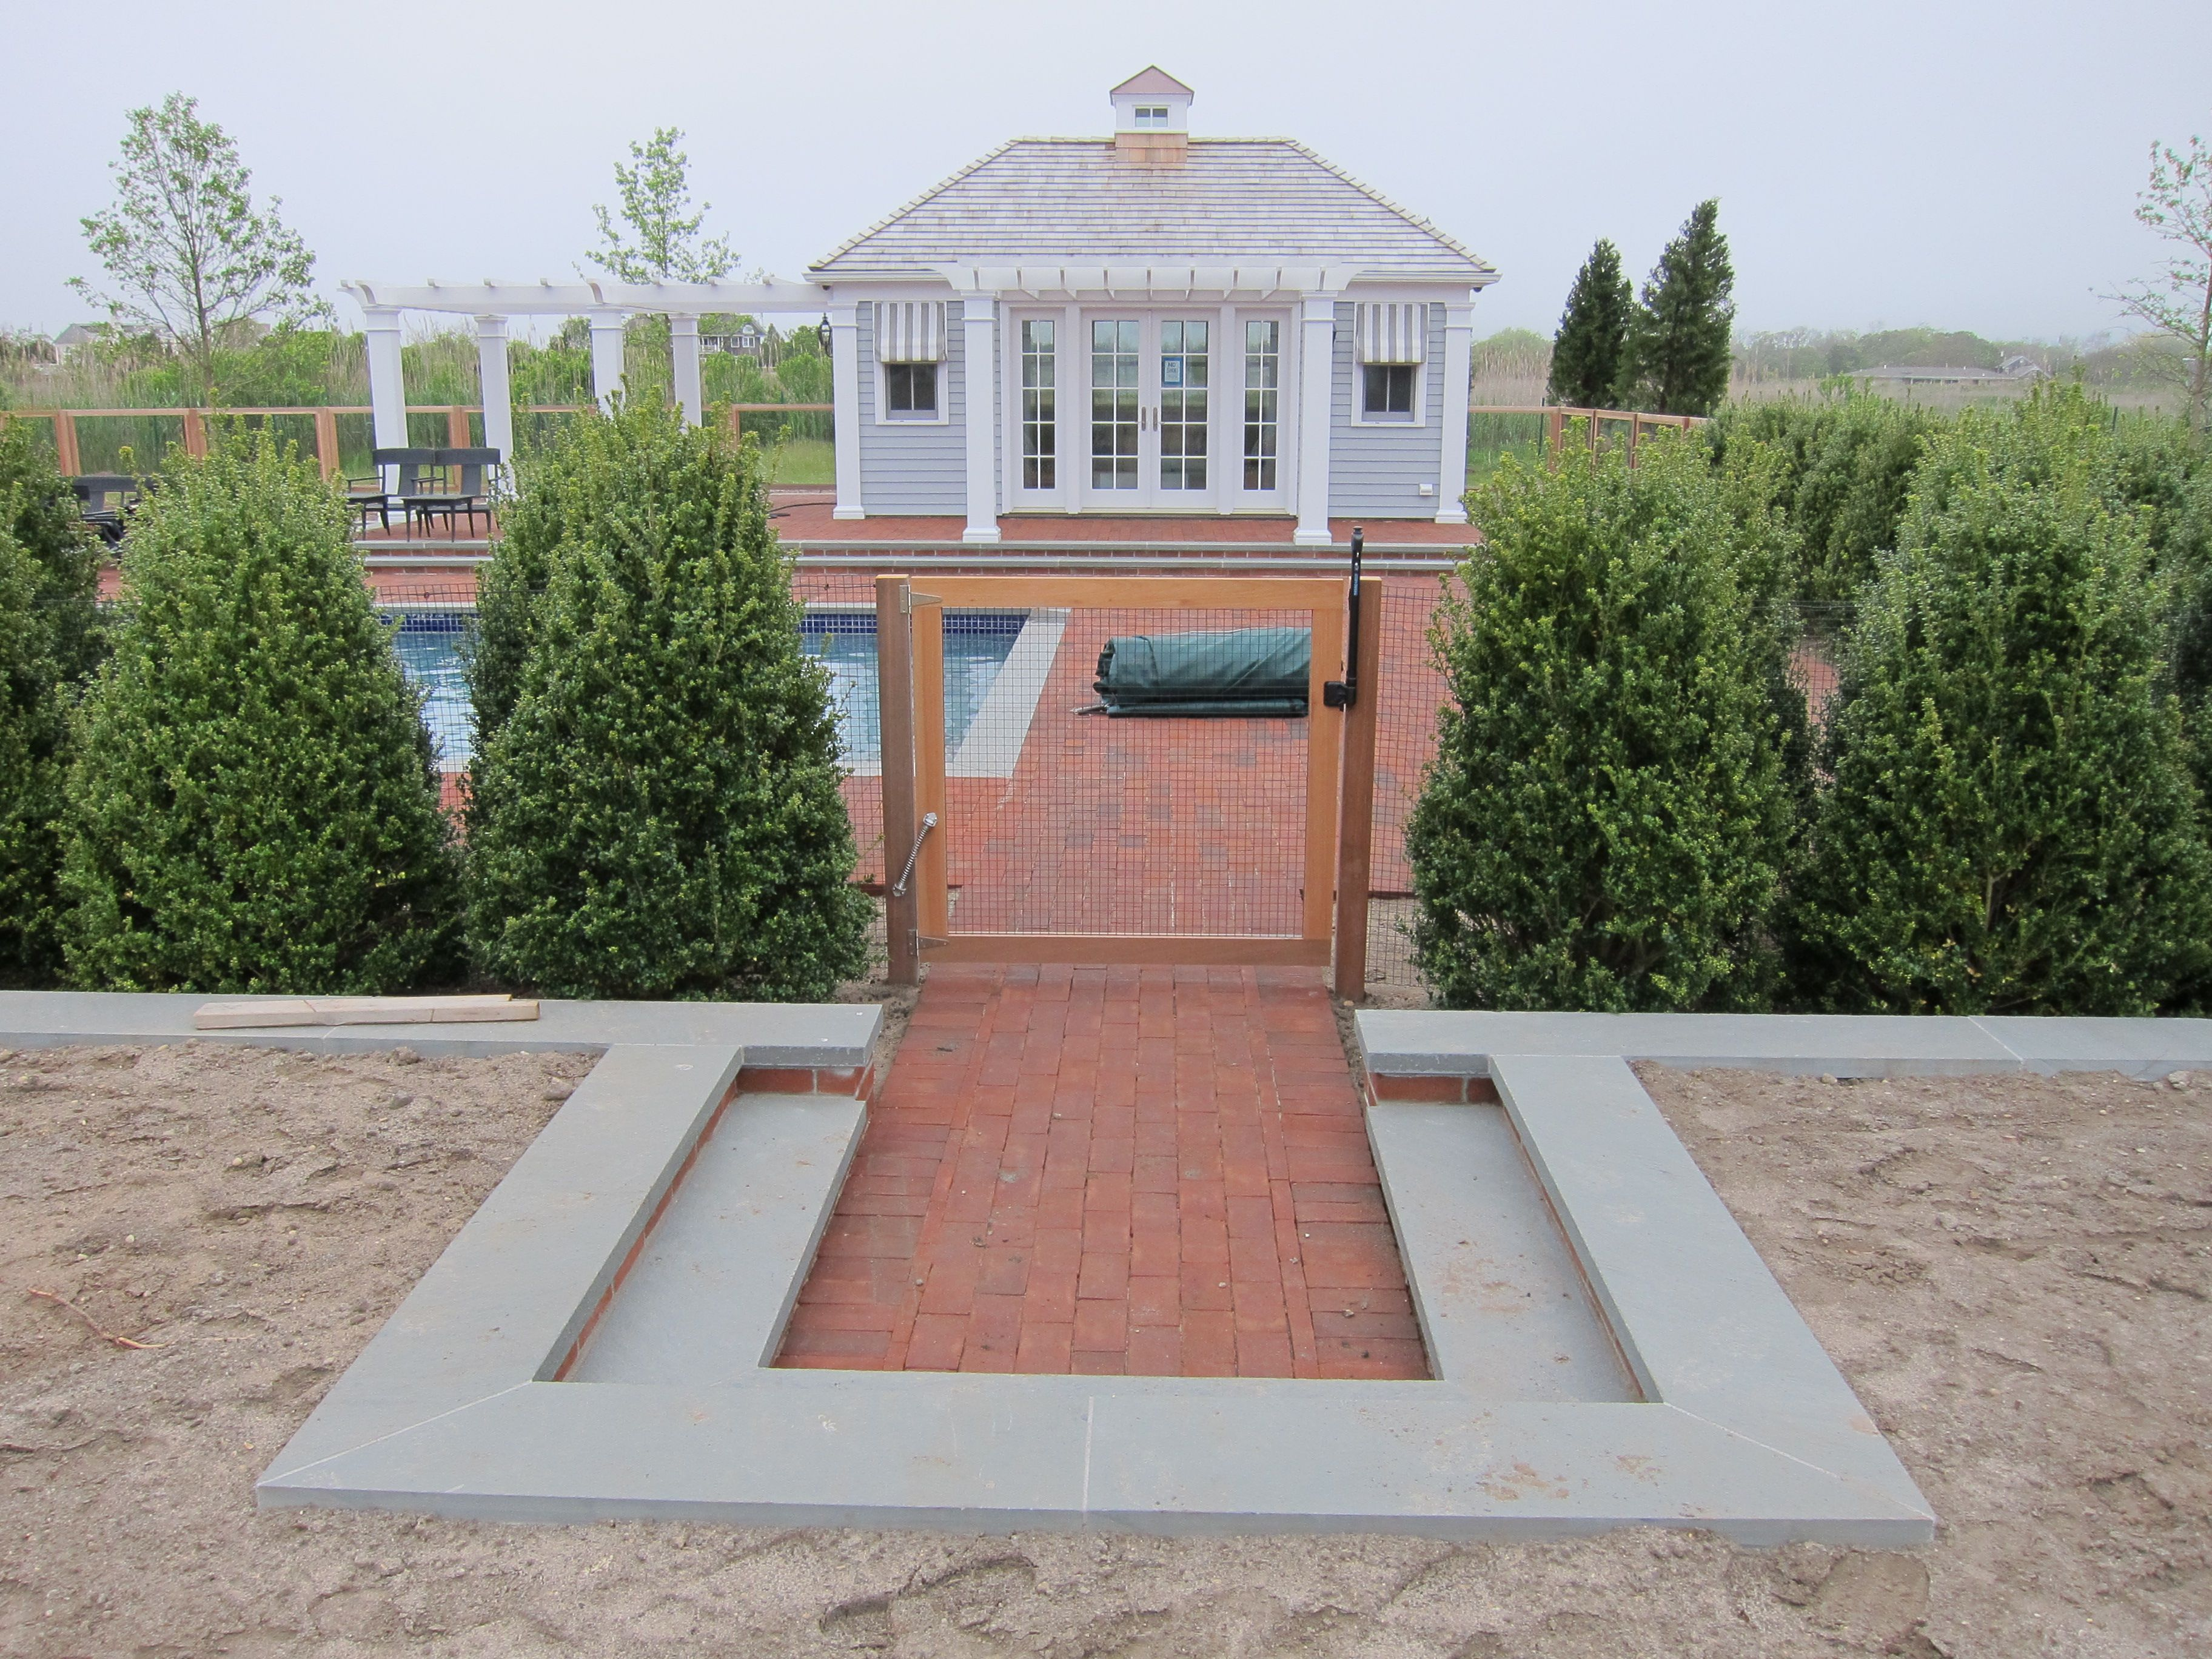 Stone Patio With Steps And Pool Entrance Gate